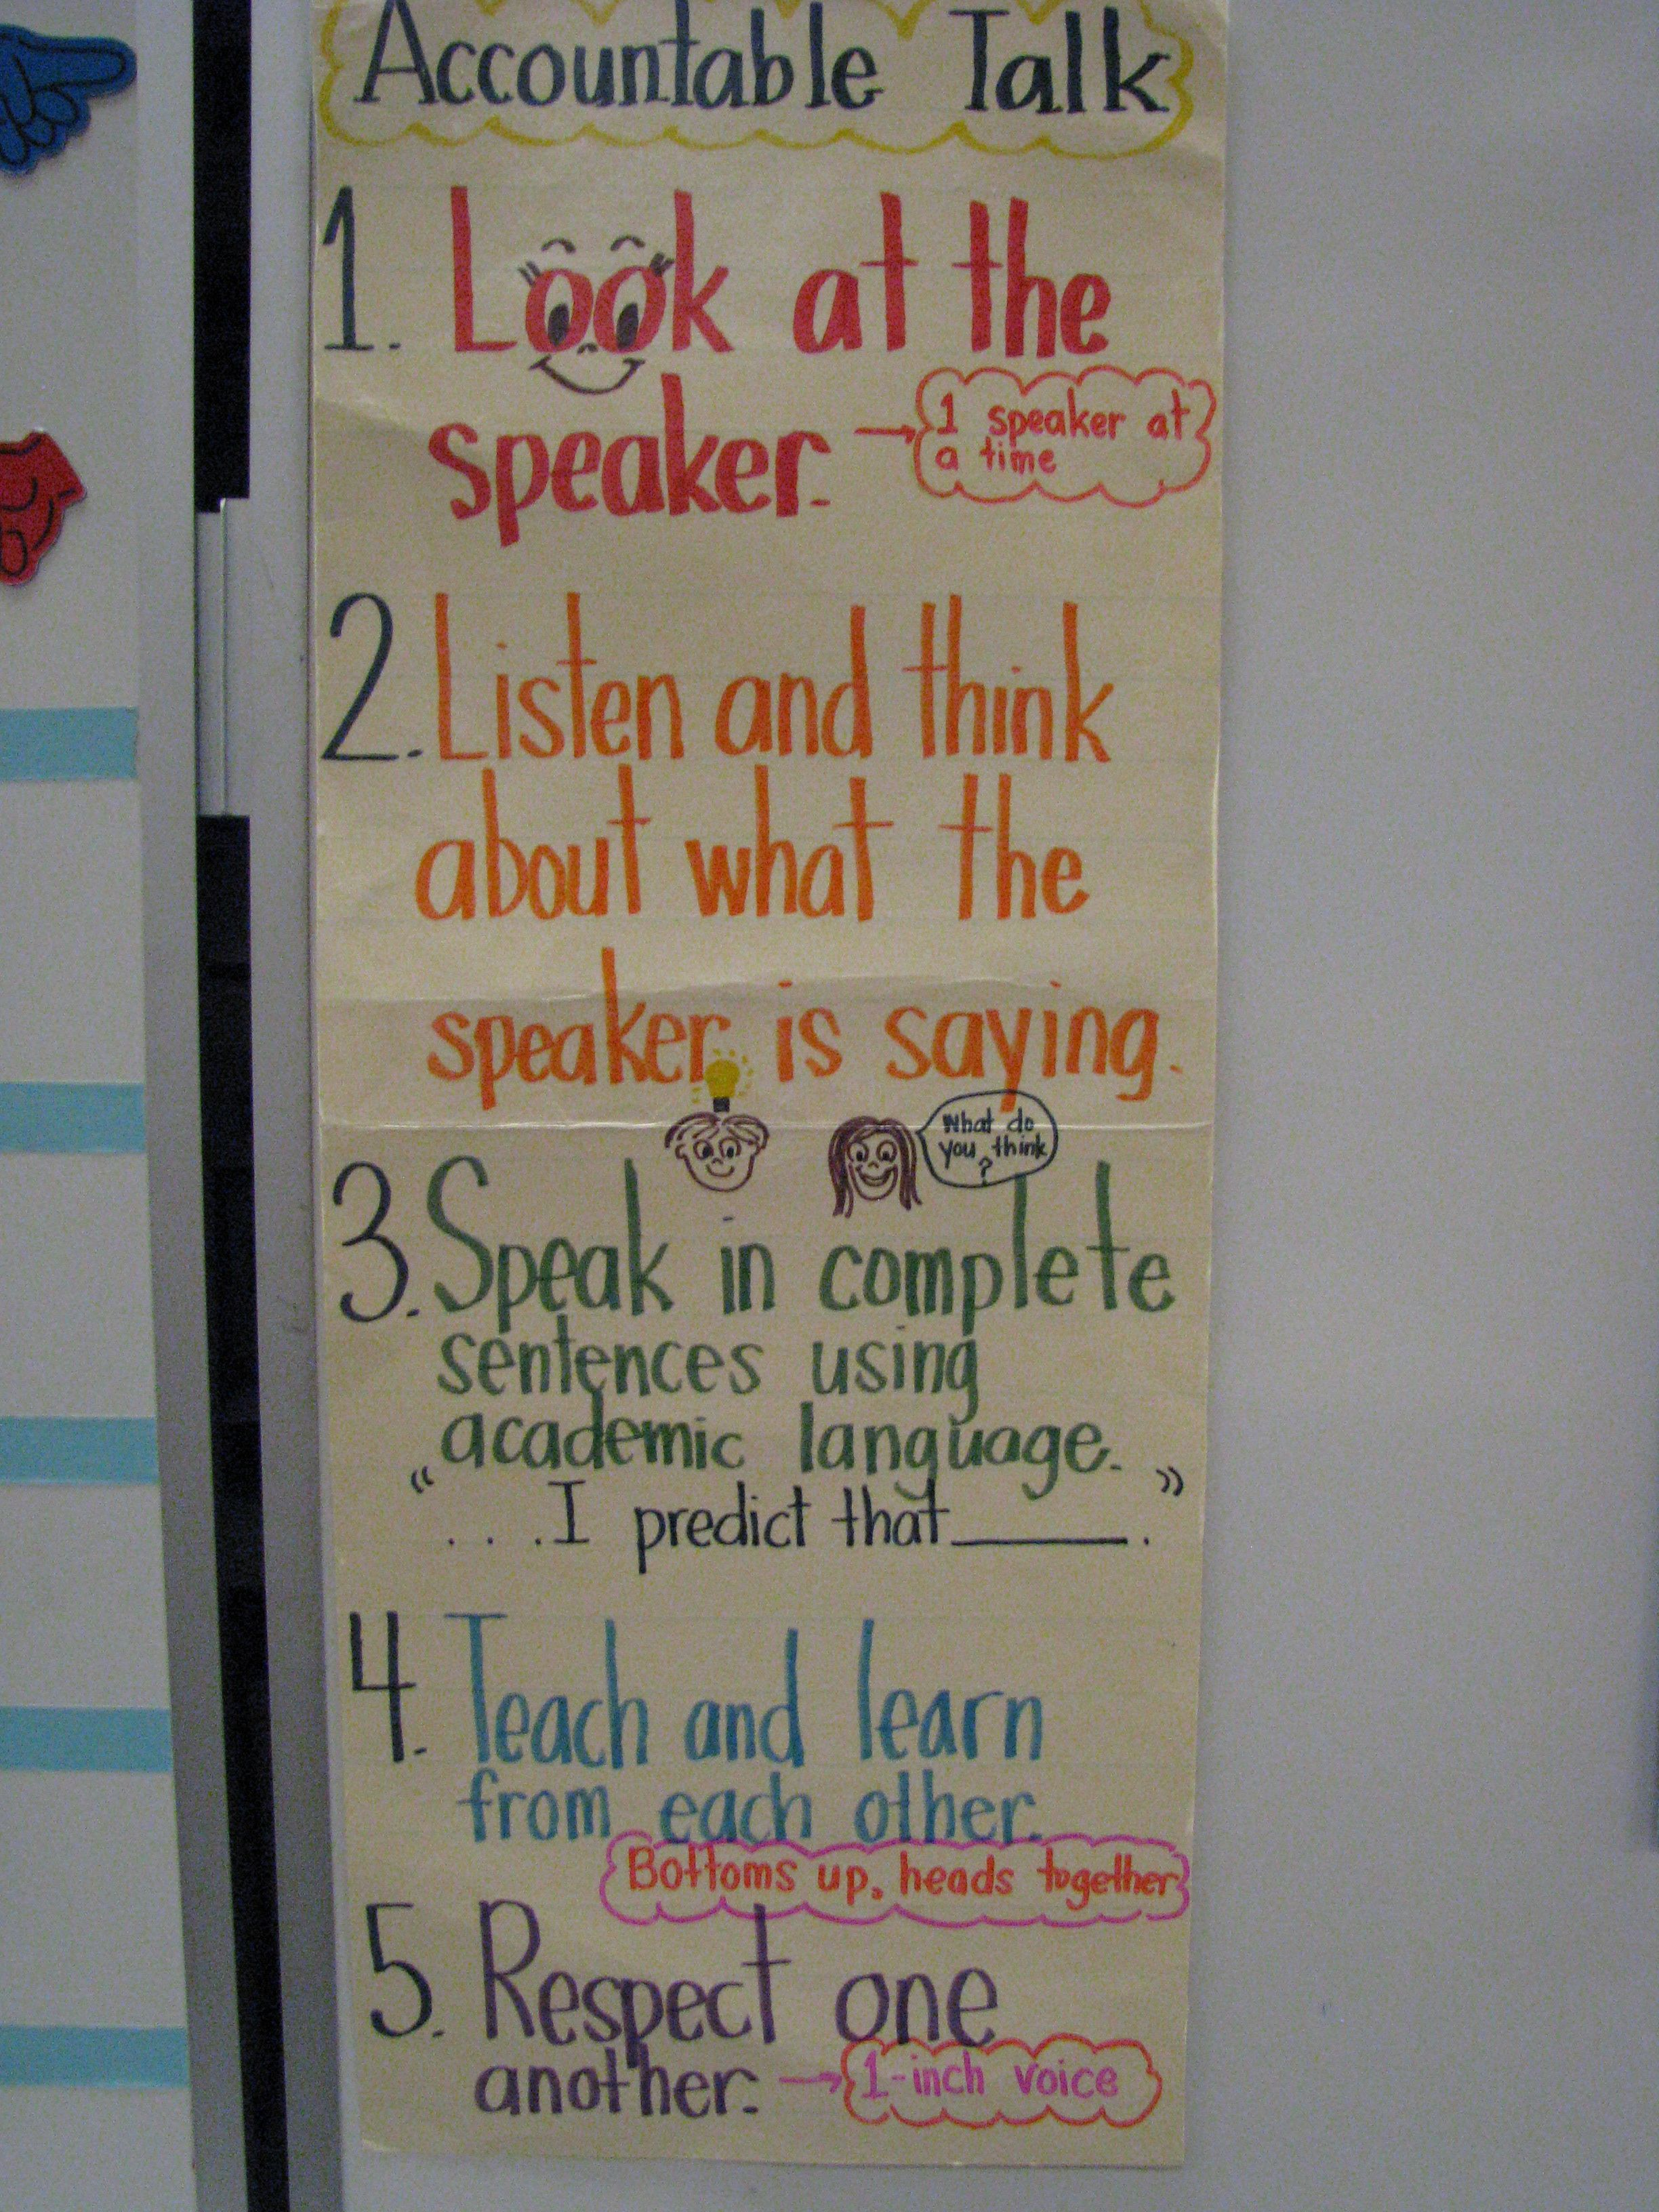 Accountable talk stems